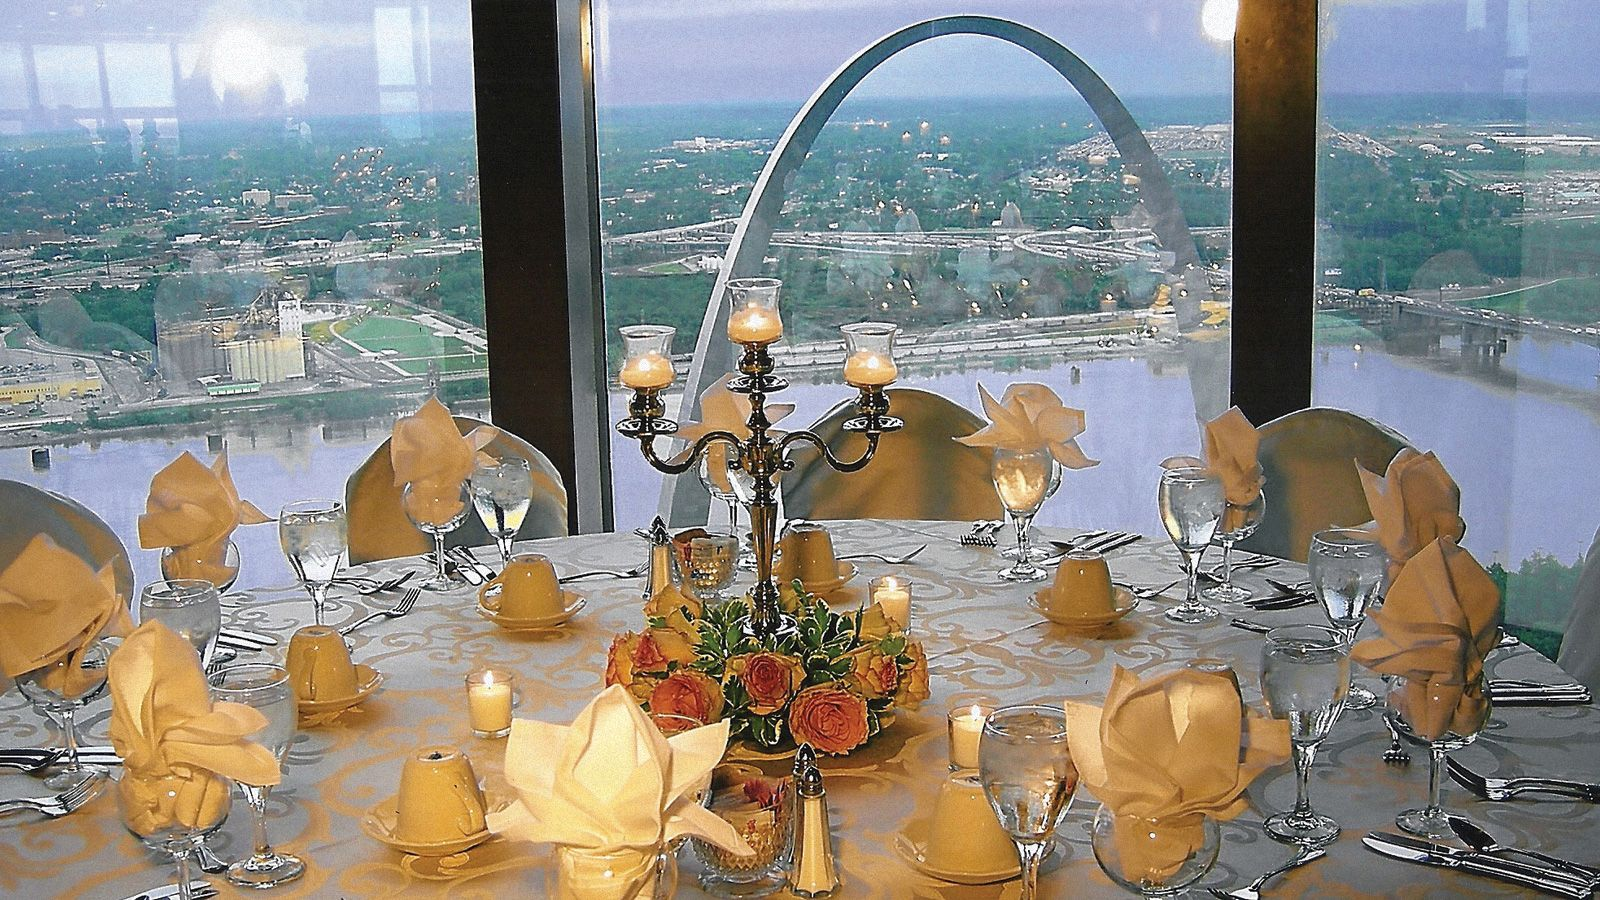 Kemoll S Makes 100 Most Scenic Restaurants In America List St Louis Mo Stlrestaurant News Has Several Fantastic With